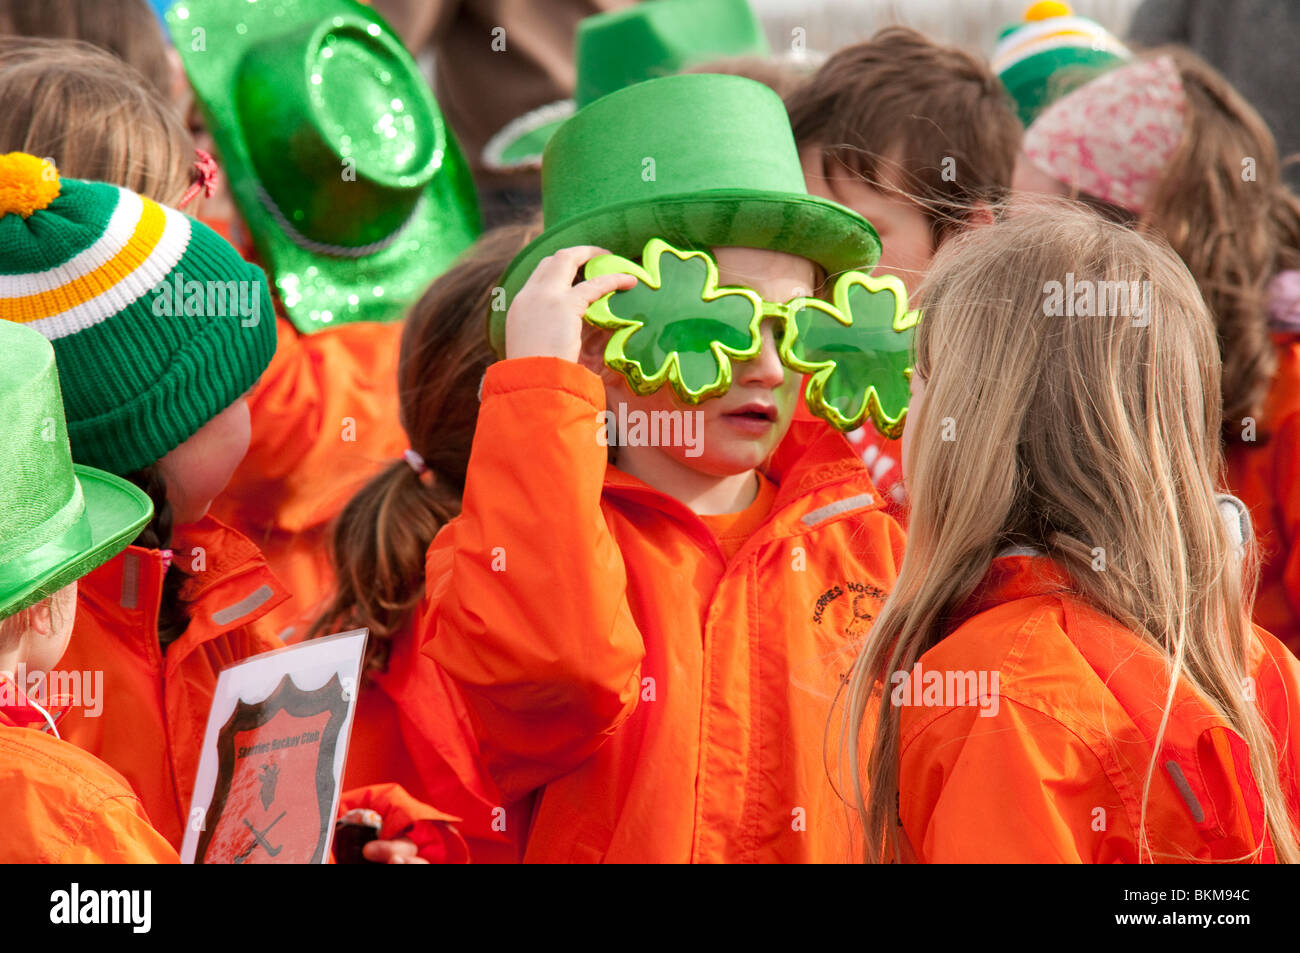 Children having fun at the Saint Patrick's Day Parade in Skerries, County Dublin, Ireland 2010 - Stock Image